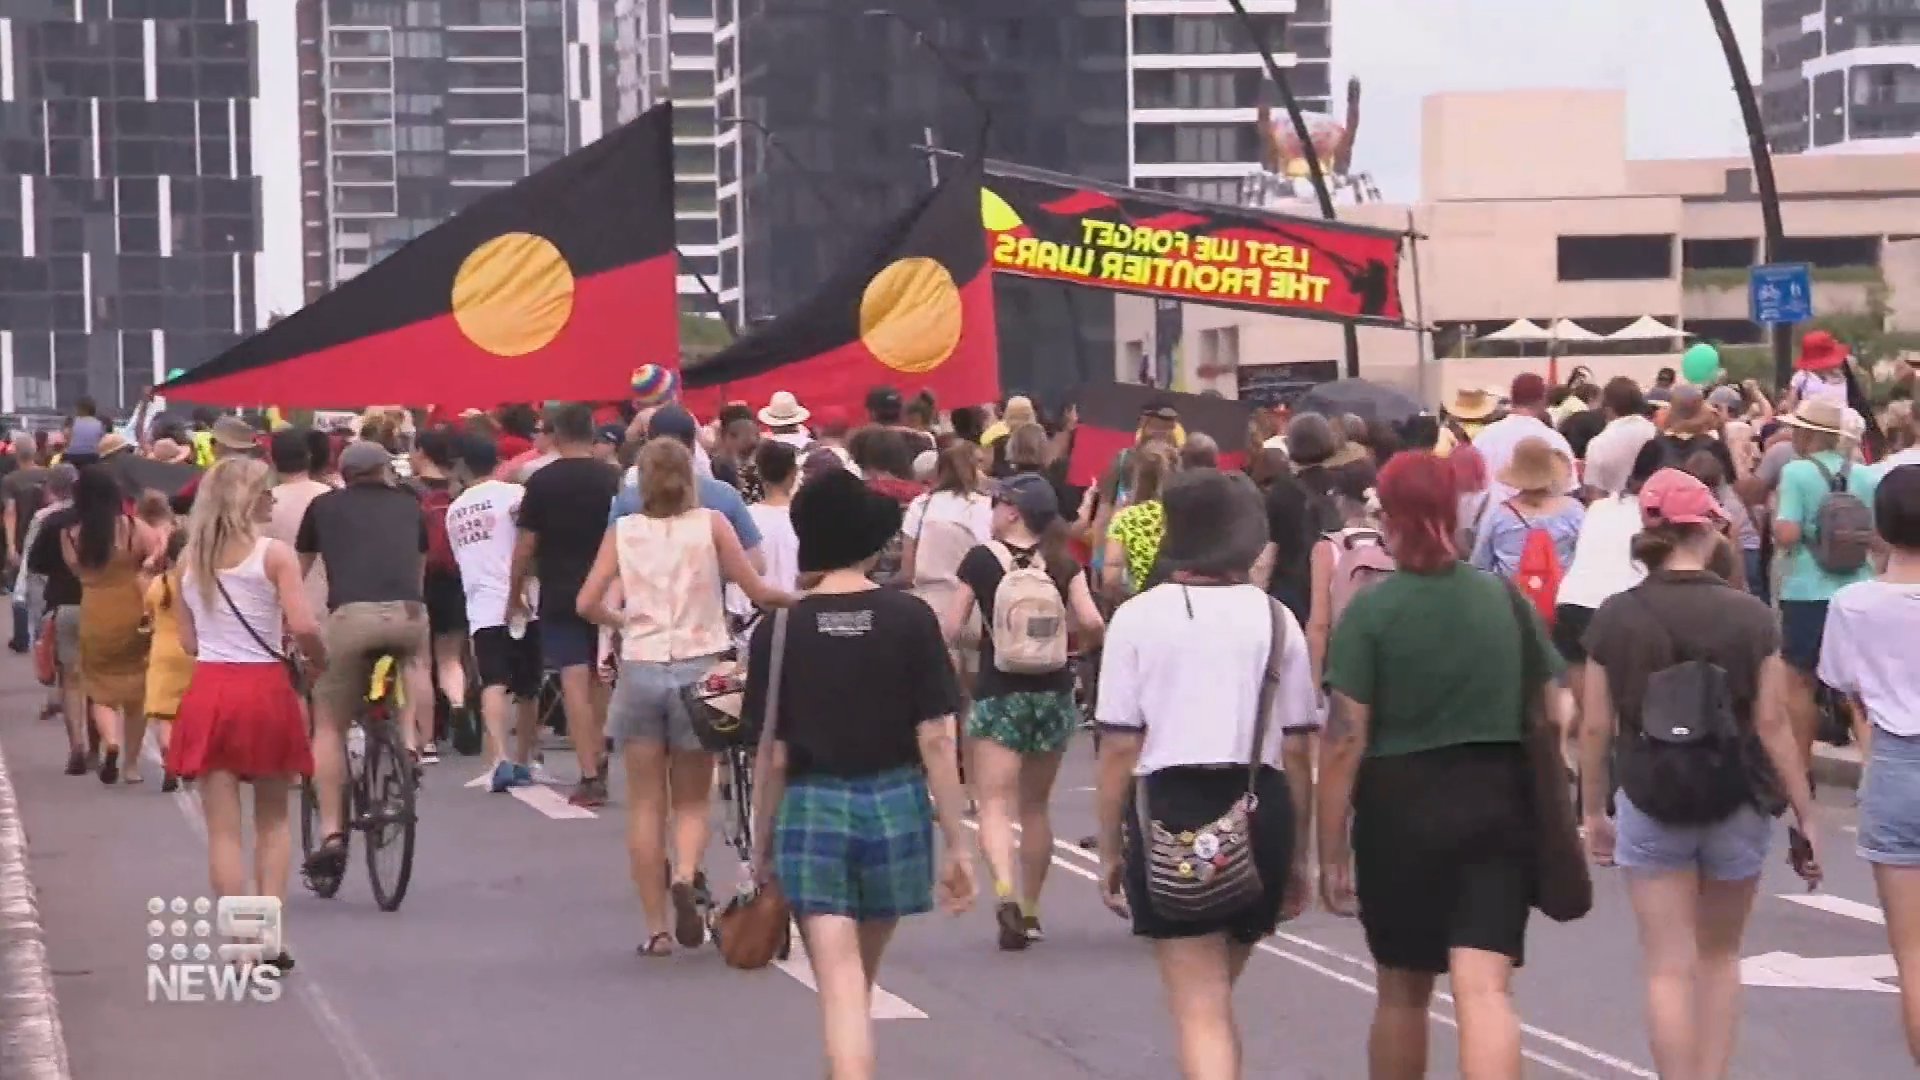 Thousands of protesters expected ahead of Australia Day